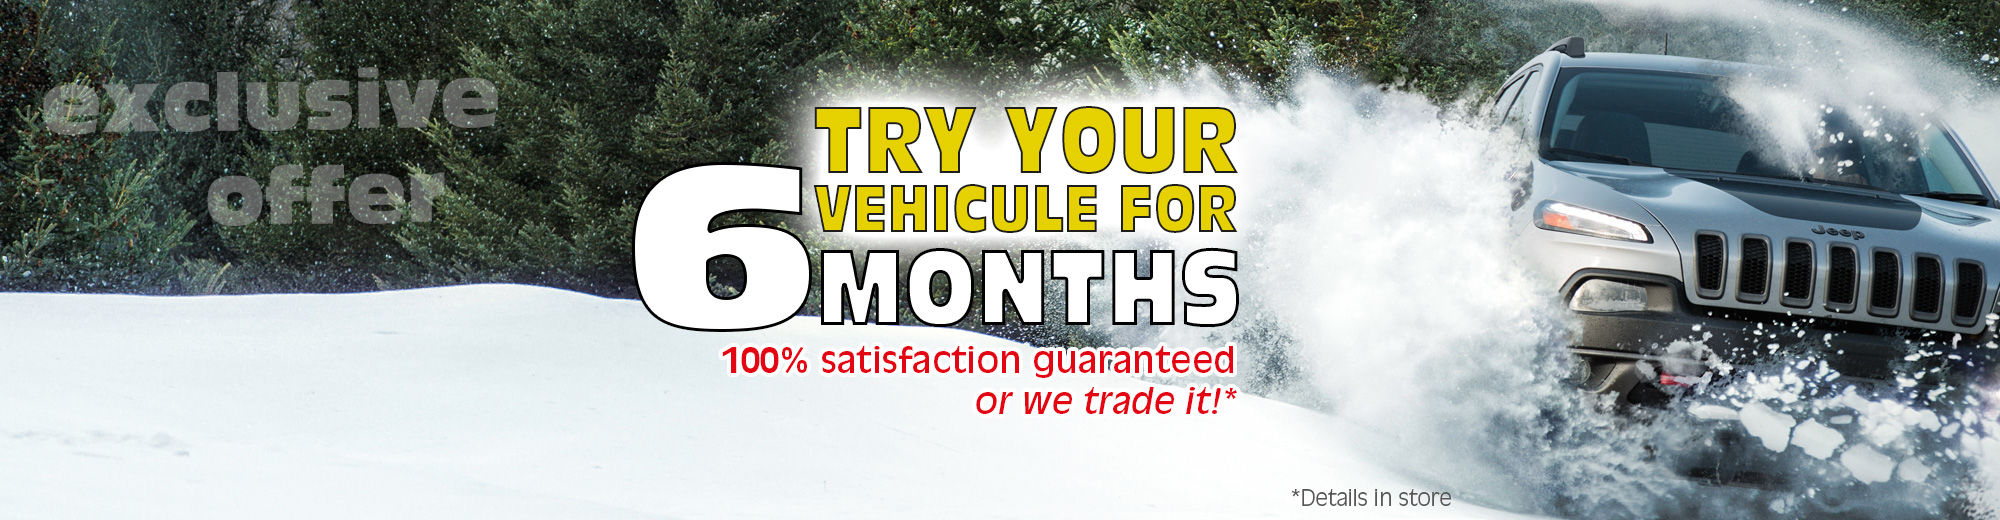 Try your vehicule for 6 months